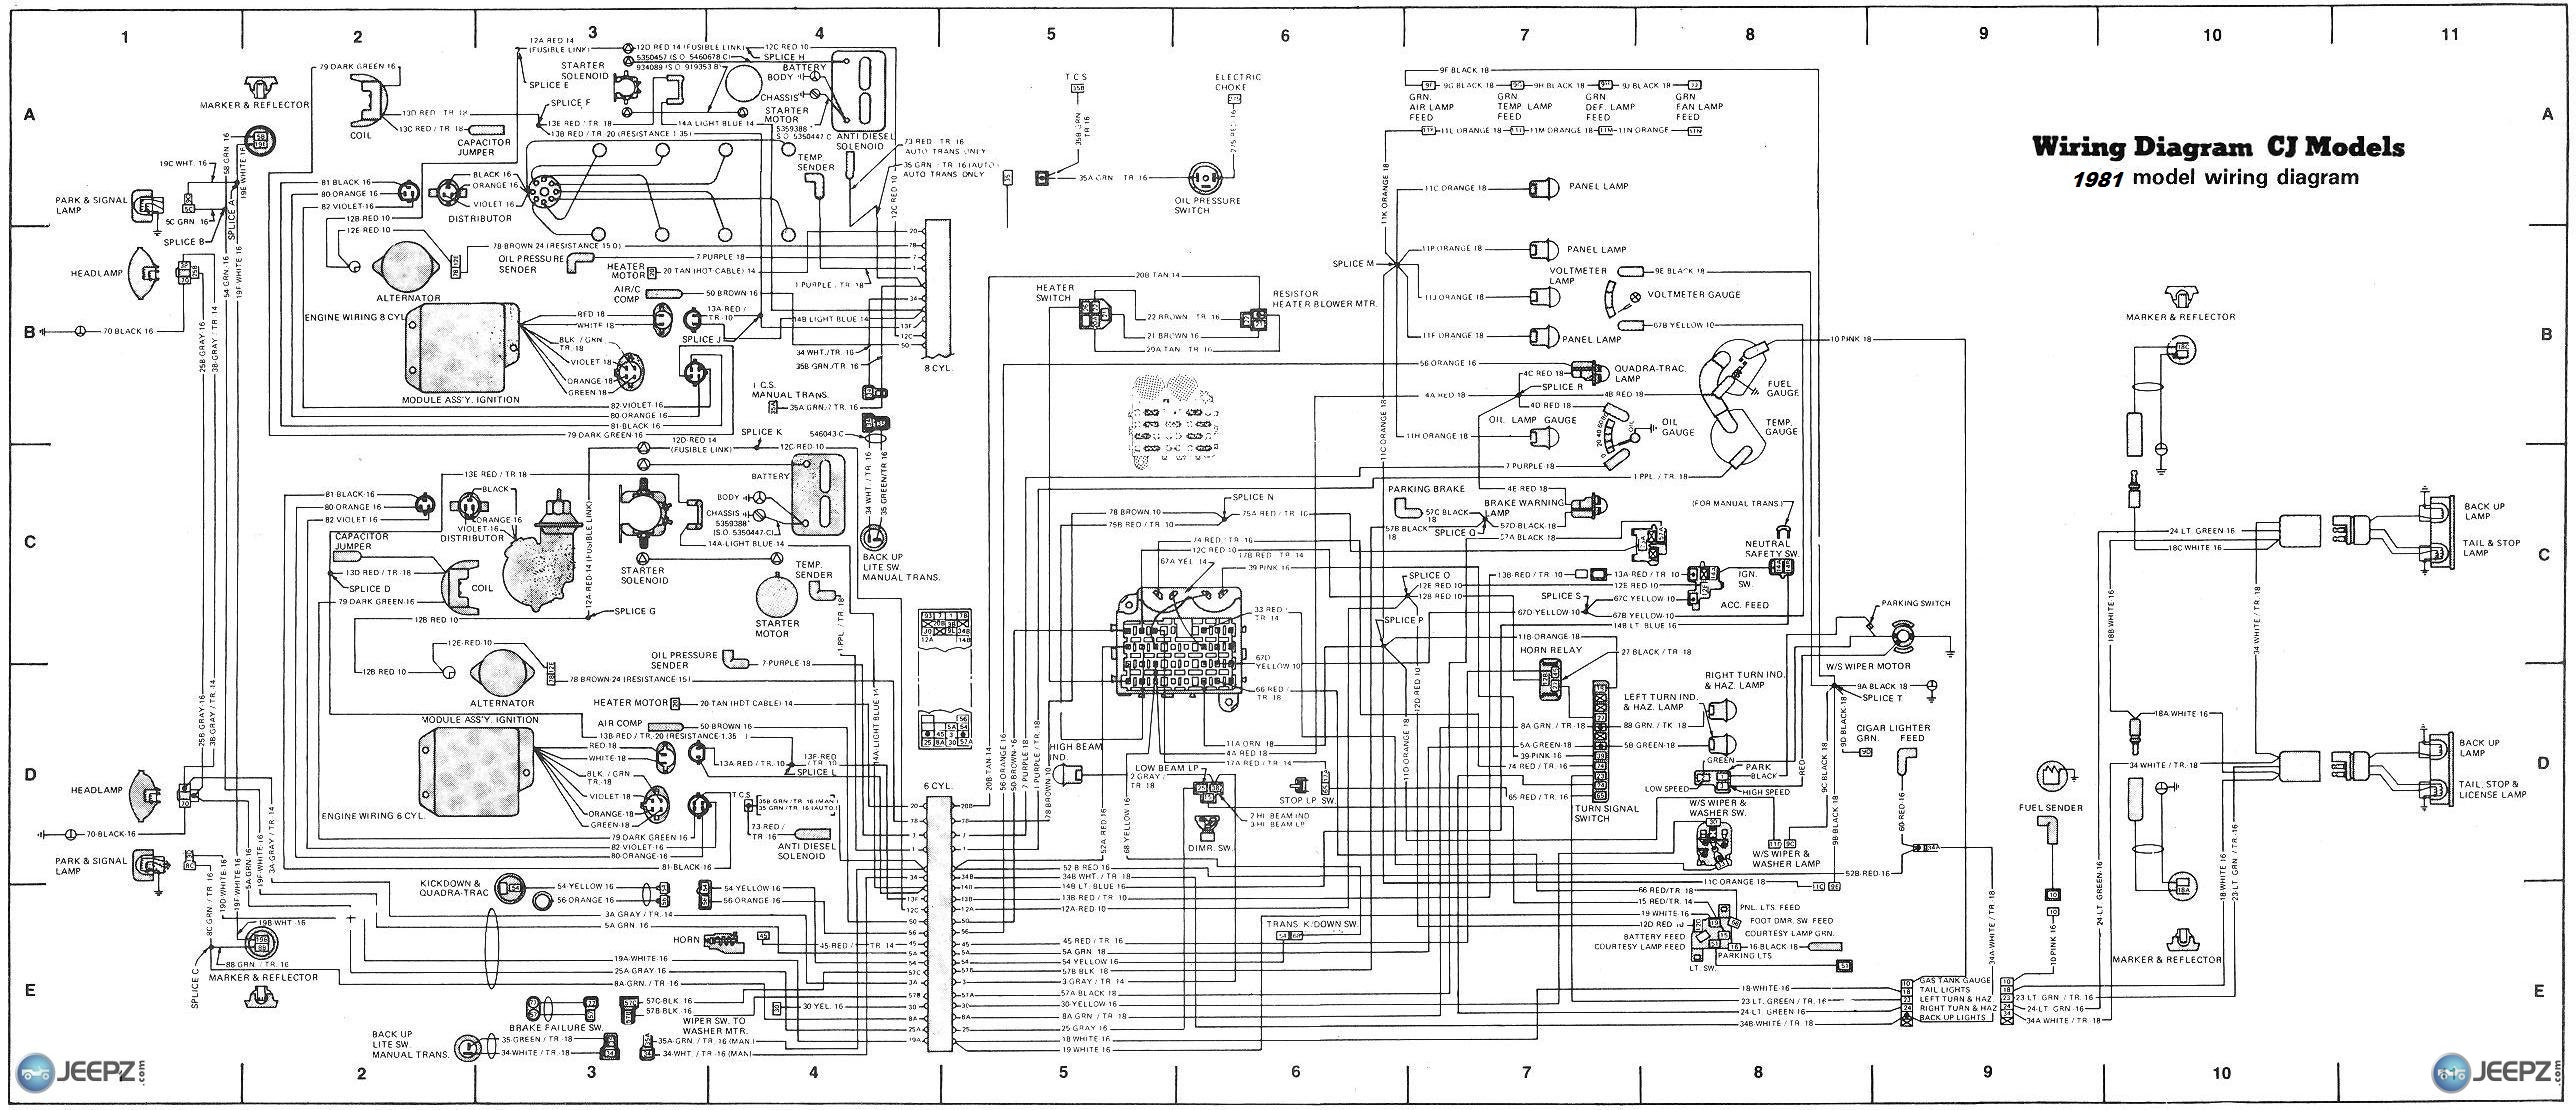 small resolution of wiring diagram for cj8 wiring diagram source tools for wiring 1981 jeep cj8 wiring diagram wiring